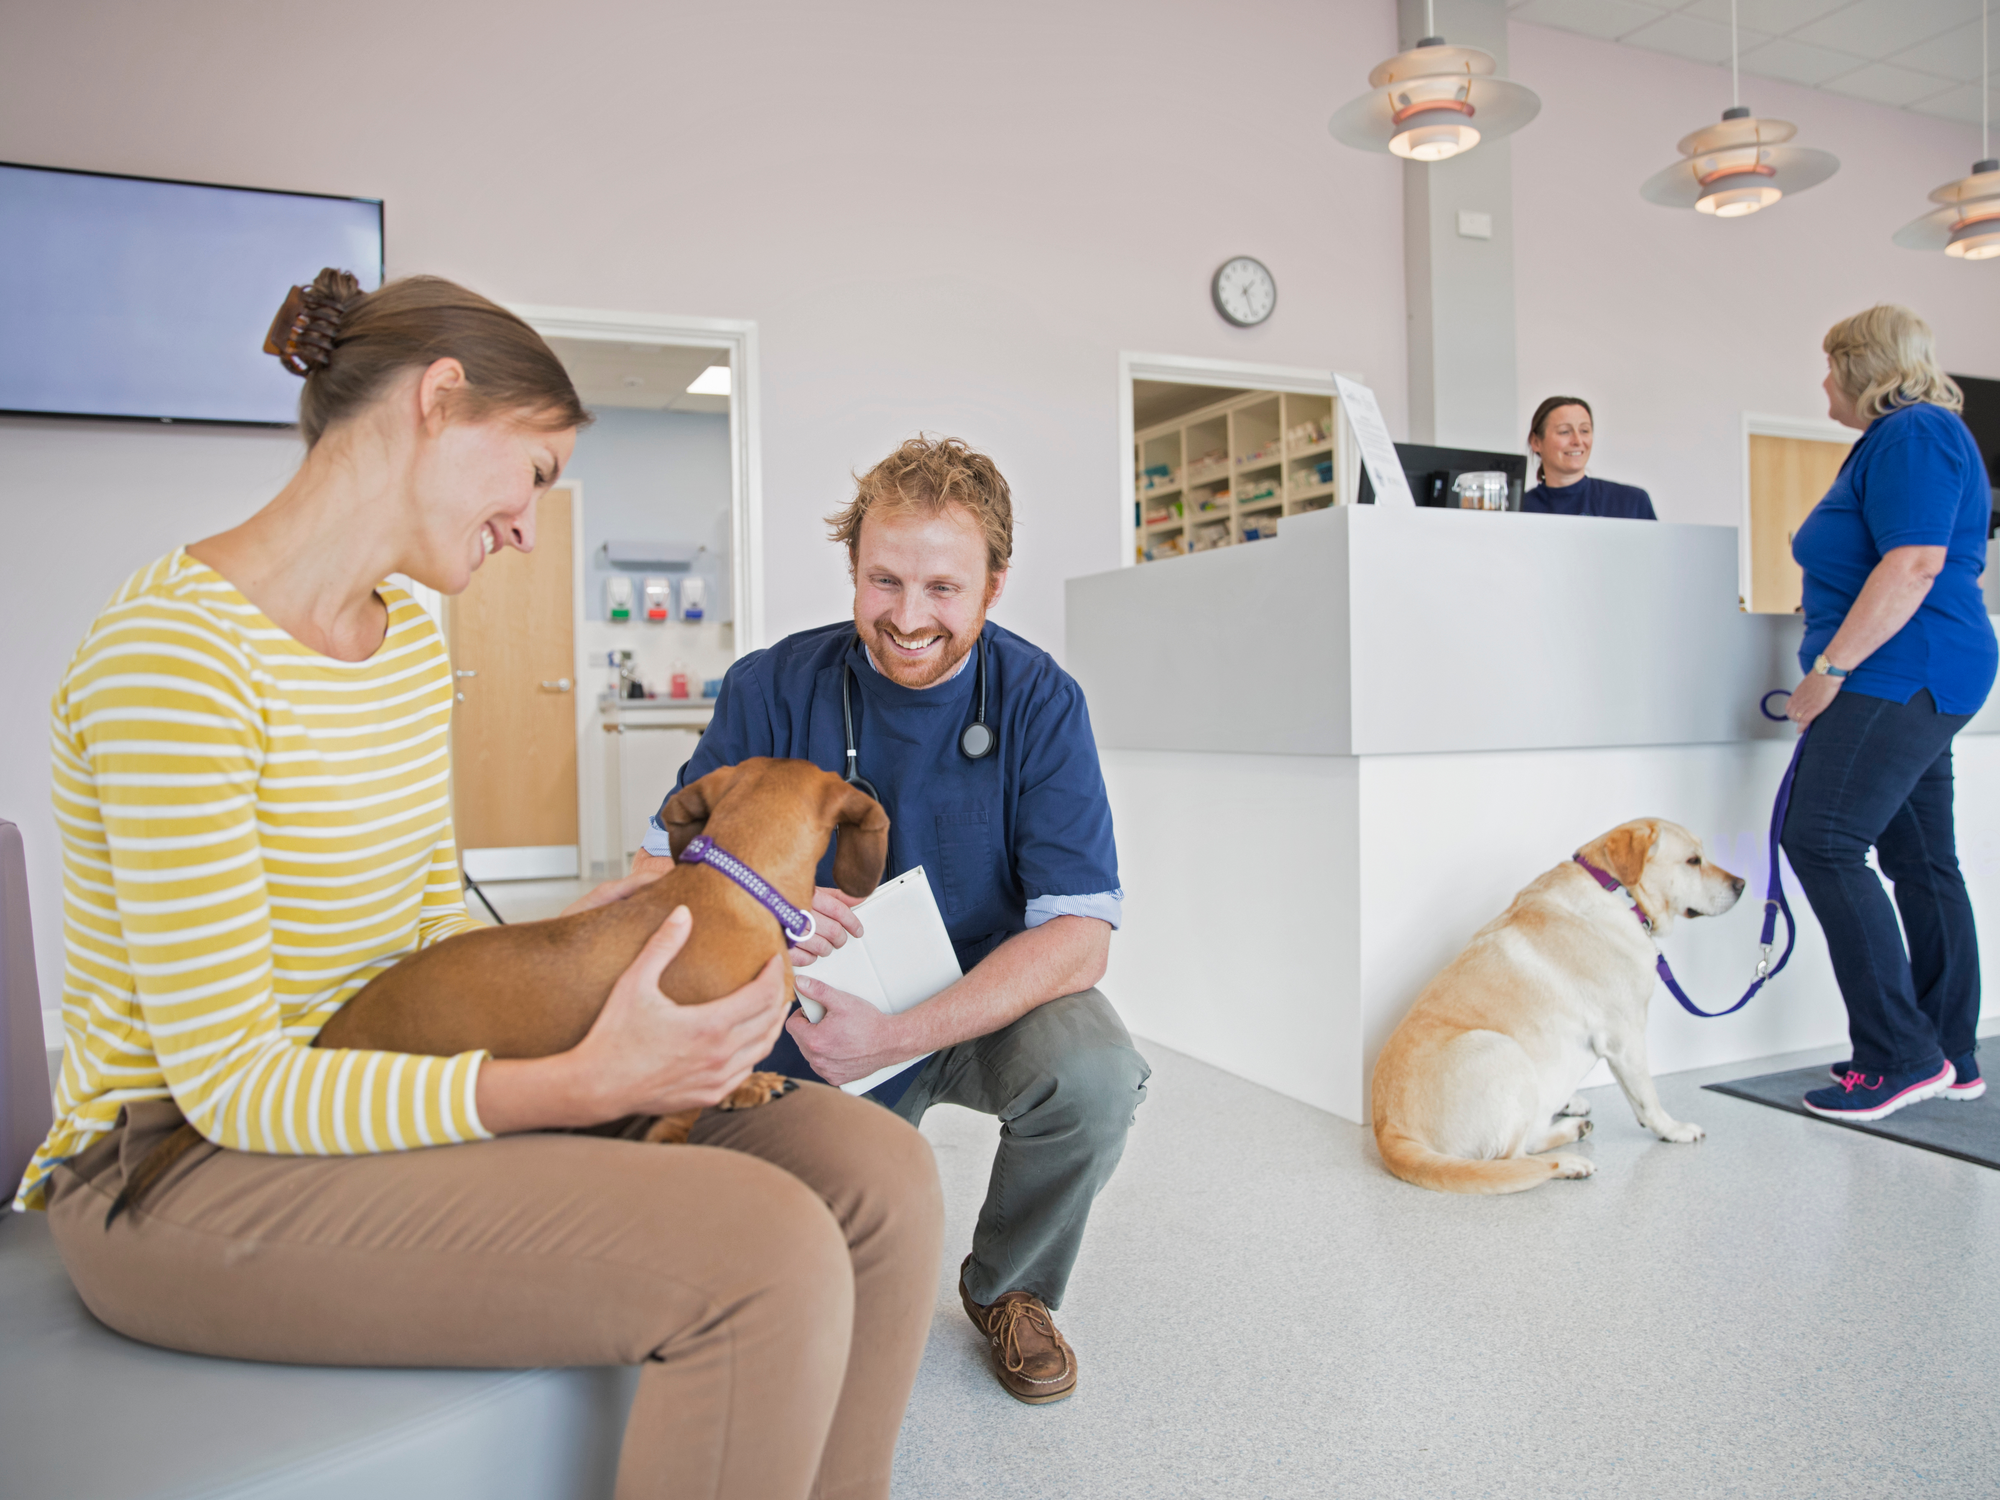 Signs You Should Take Your Pet to the Emergency Vet